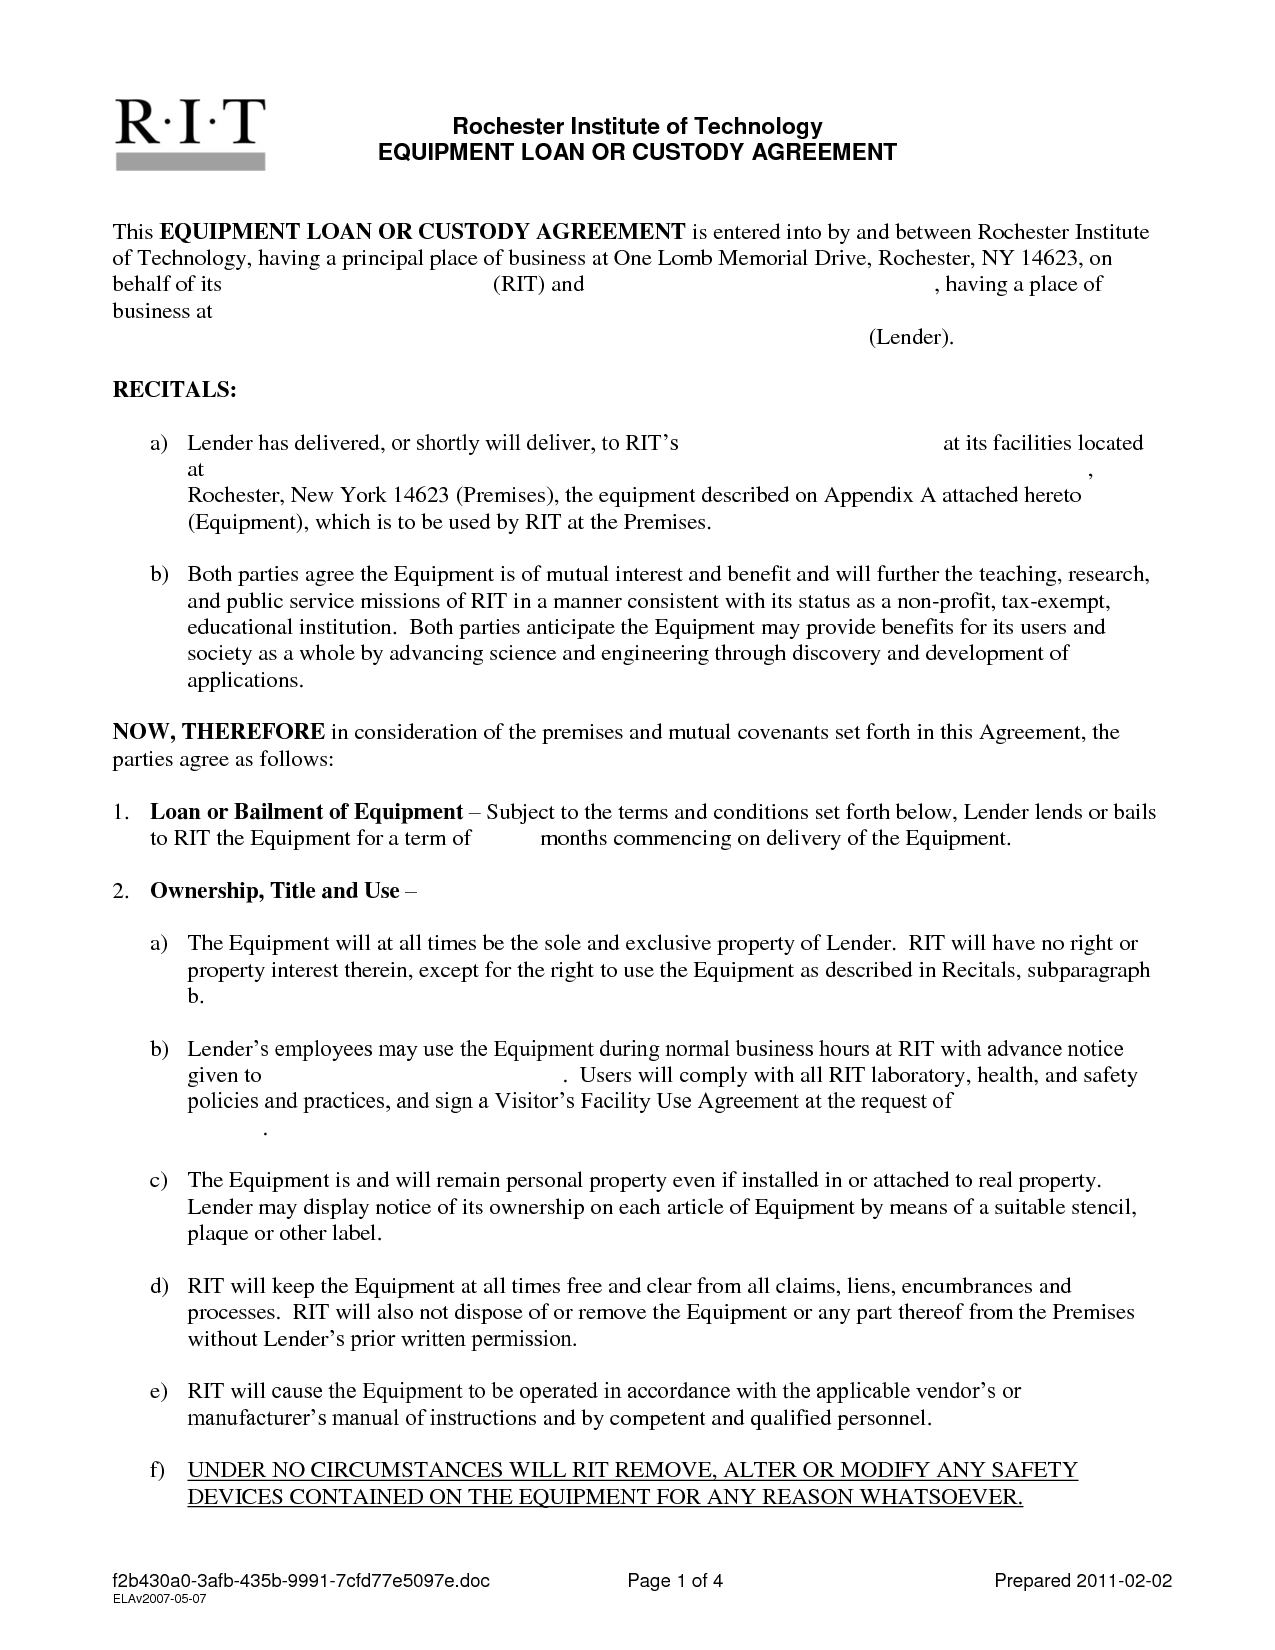 Free Loan Agreement Template Loan Contract Template 26 Examples In Word Pdf  Free, 5 Loan Agreement Templates To Write Perfect Agreements, Loan Agreement  ...  Microsoft Word Loan Agreement Template